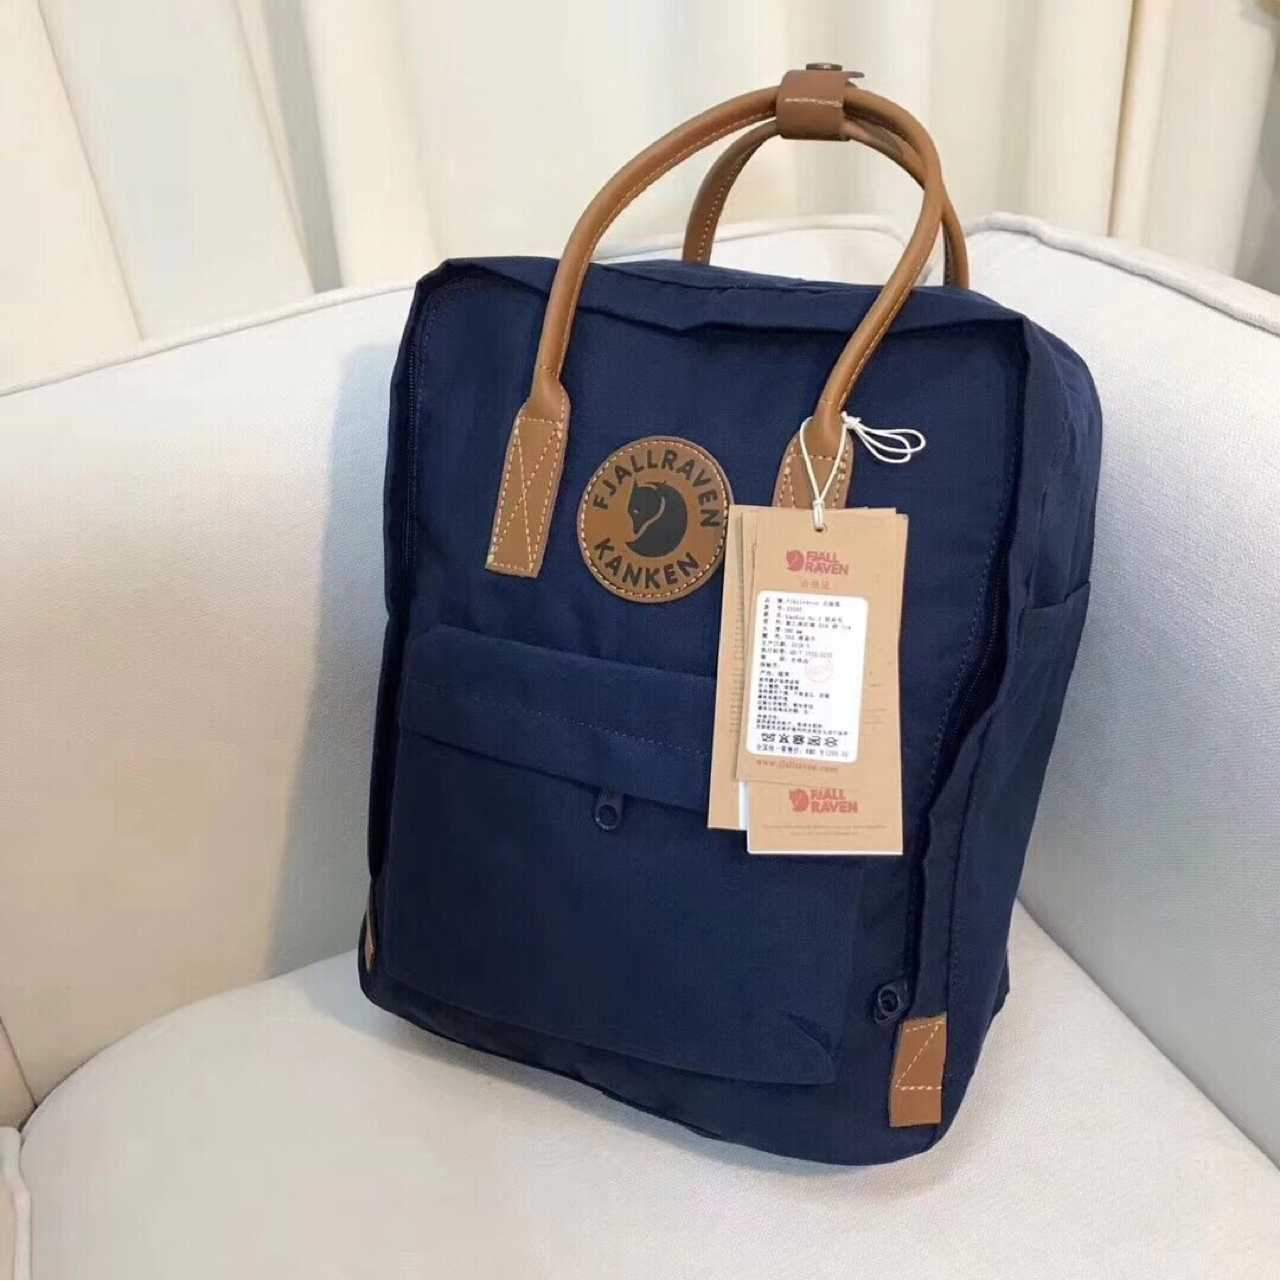 7/16/20L No. 2 Backpack in Deep Blue